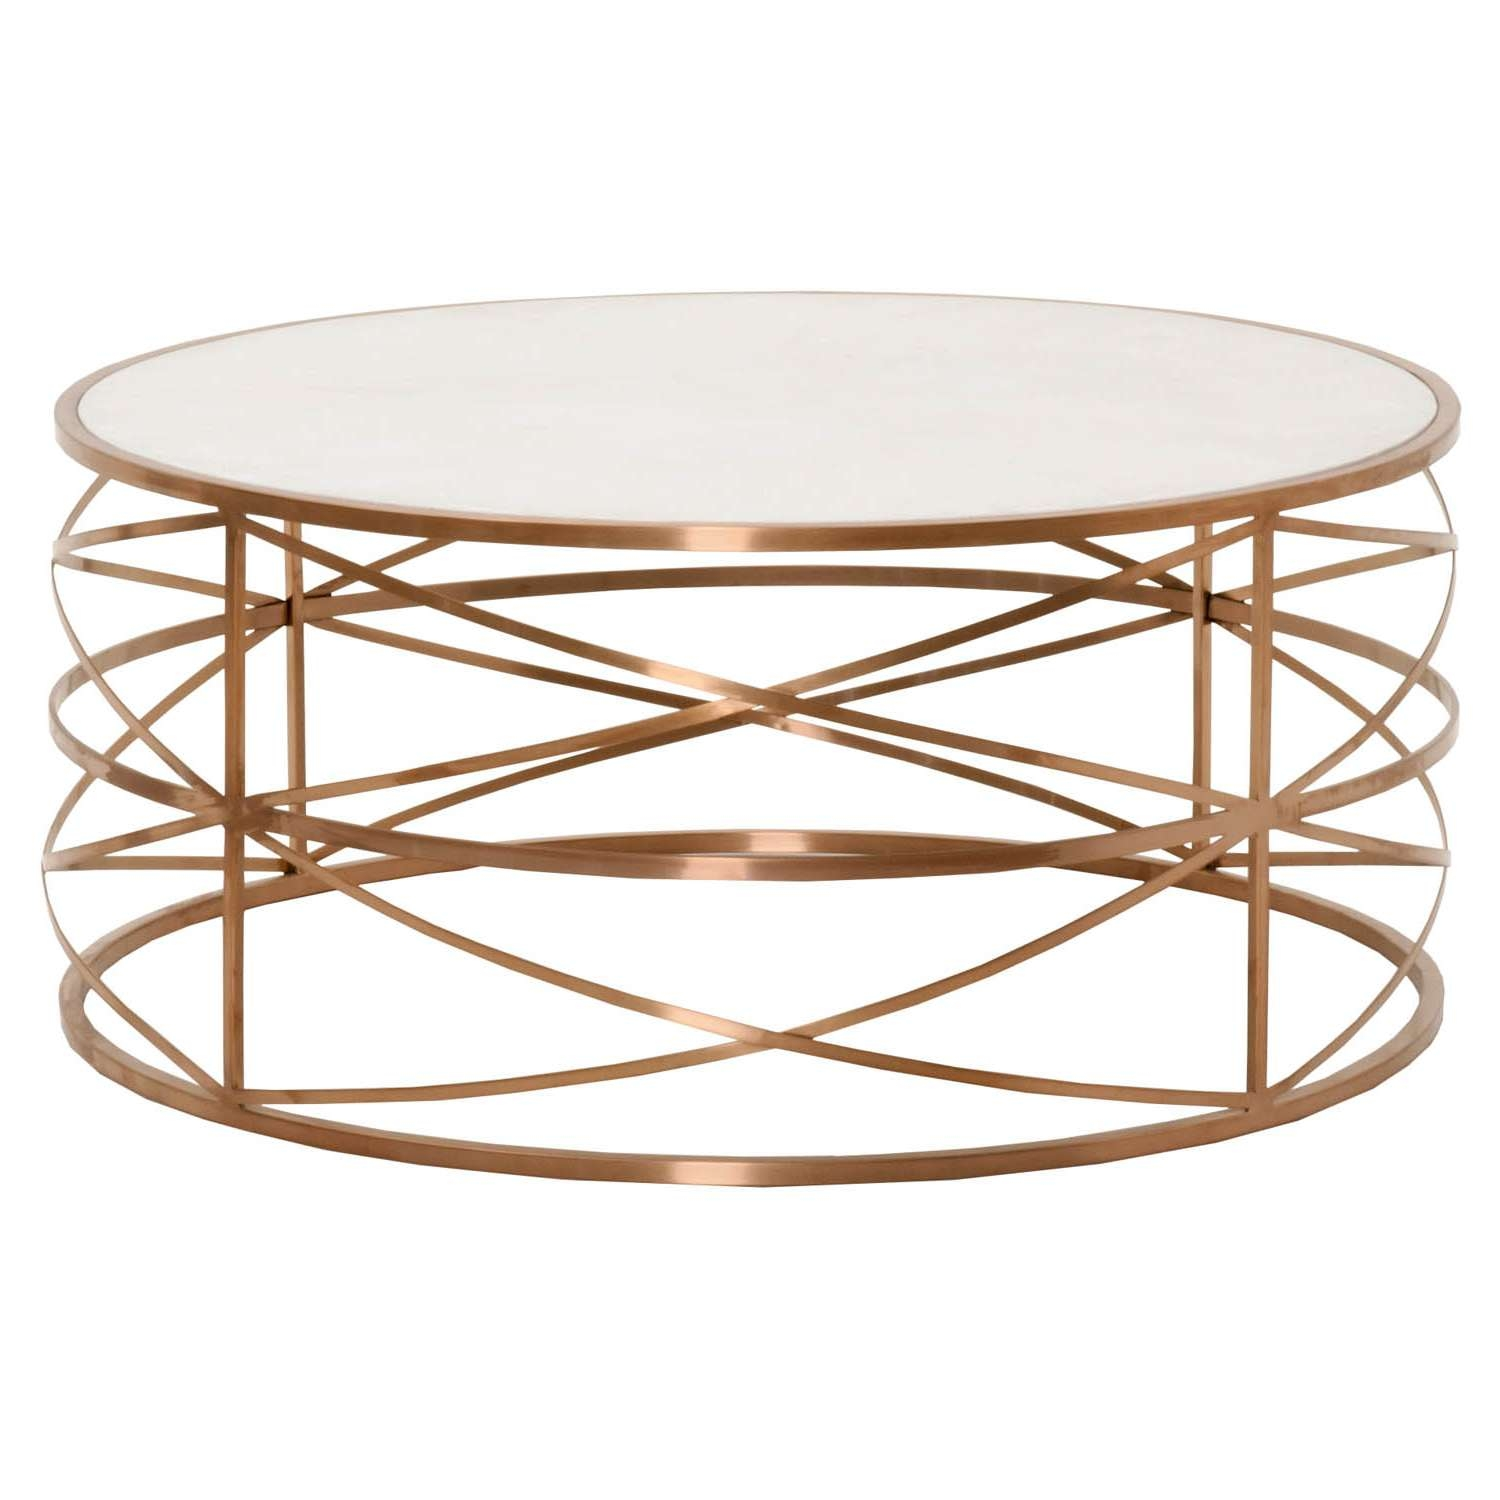 Arte Fina Furniture – Furniture, Decor With Most Up To Date Gold Round Coffee Table (View 3 of 20)